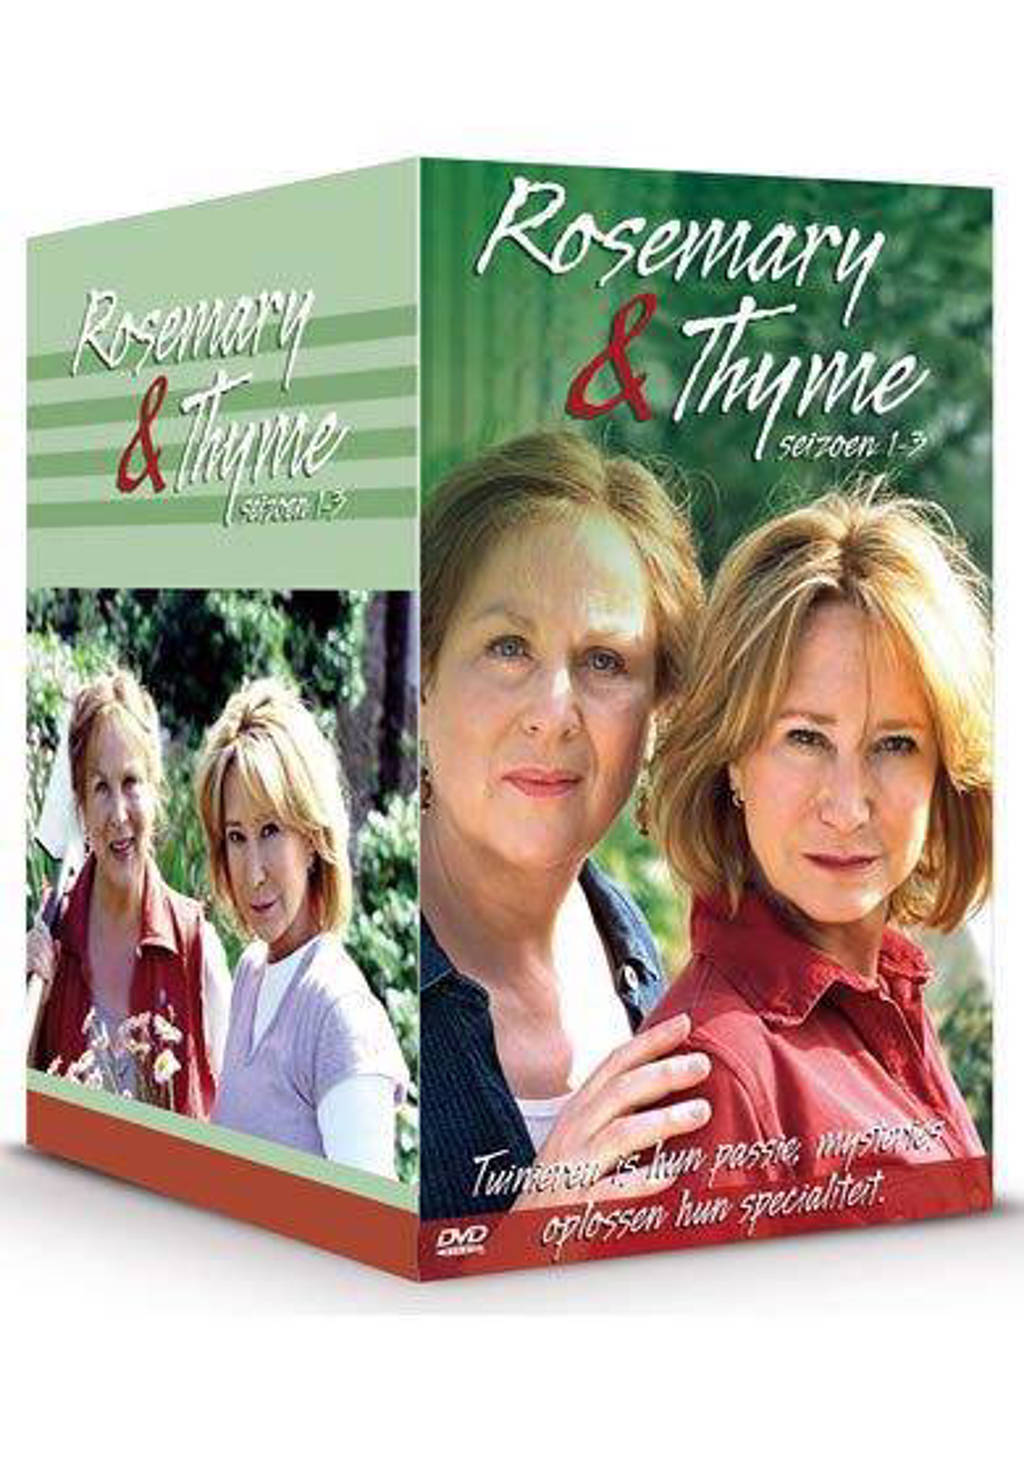 Rosemary & Thyme - The complete collection (DVD)